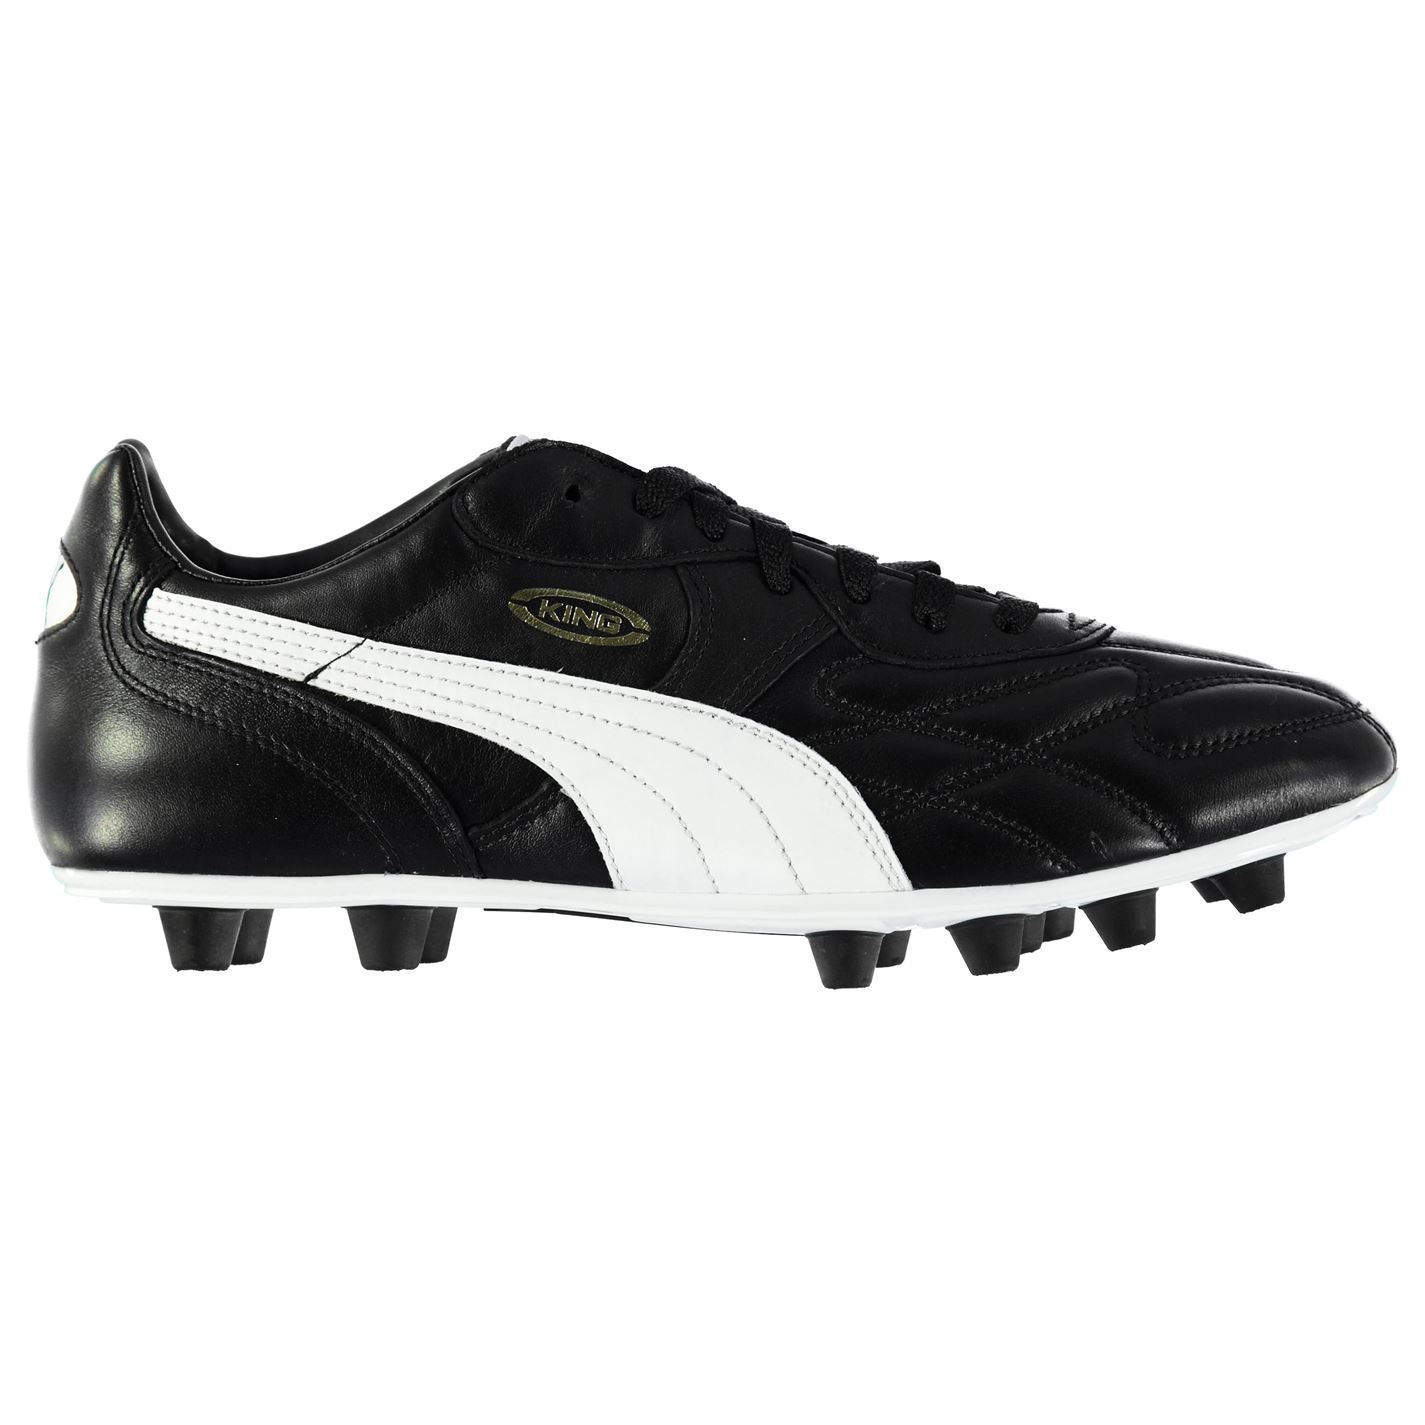 ... Puma King Top di FG Firm Ground Football Boots Mens Black Soccer Shoes  Cleats ... 2ac488ca5